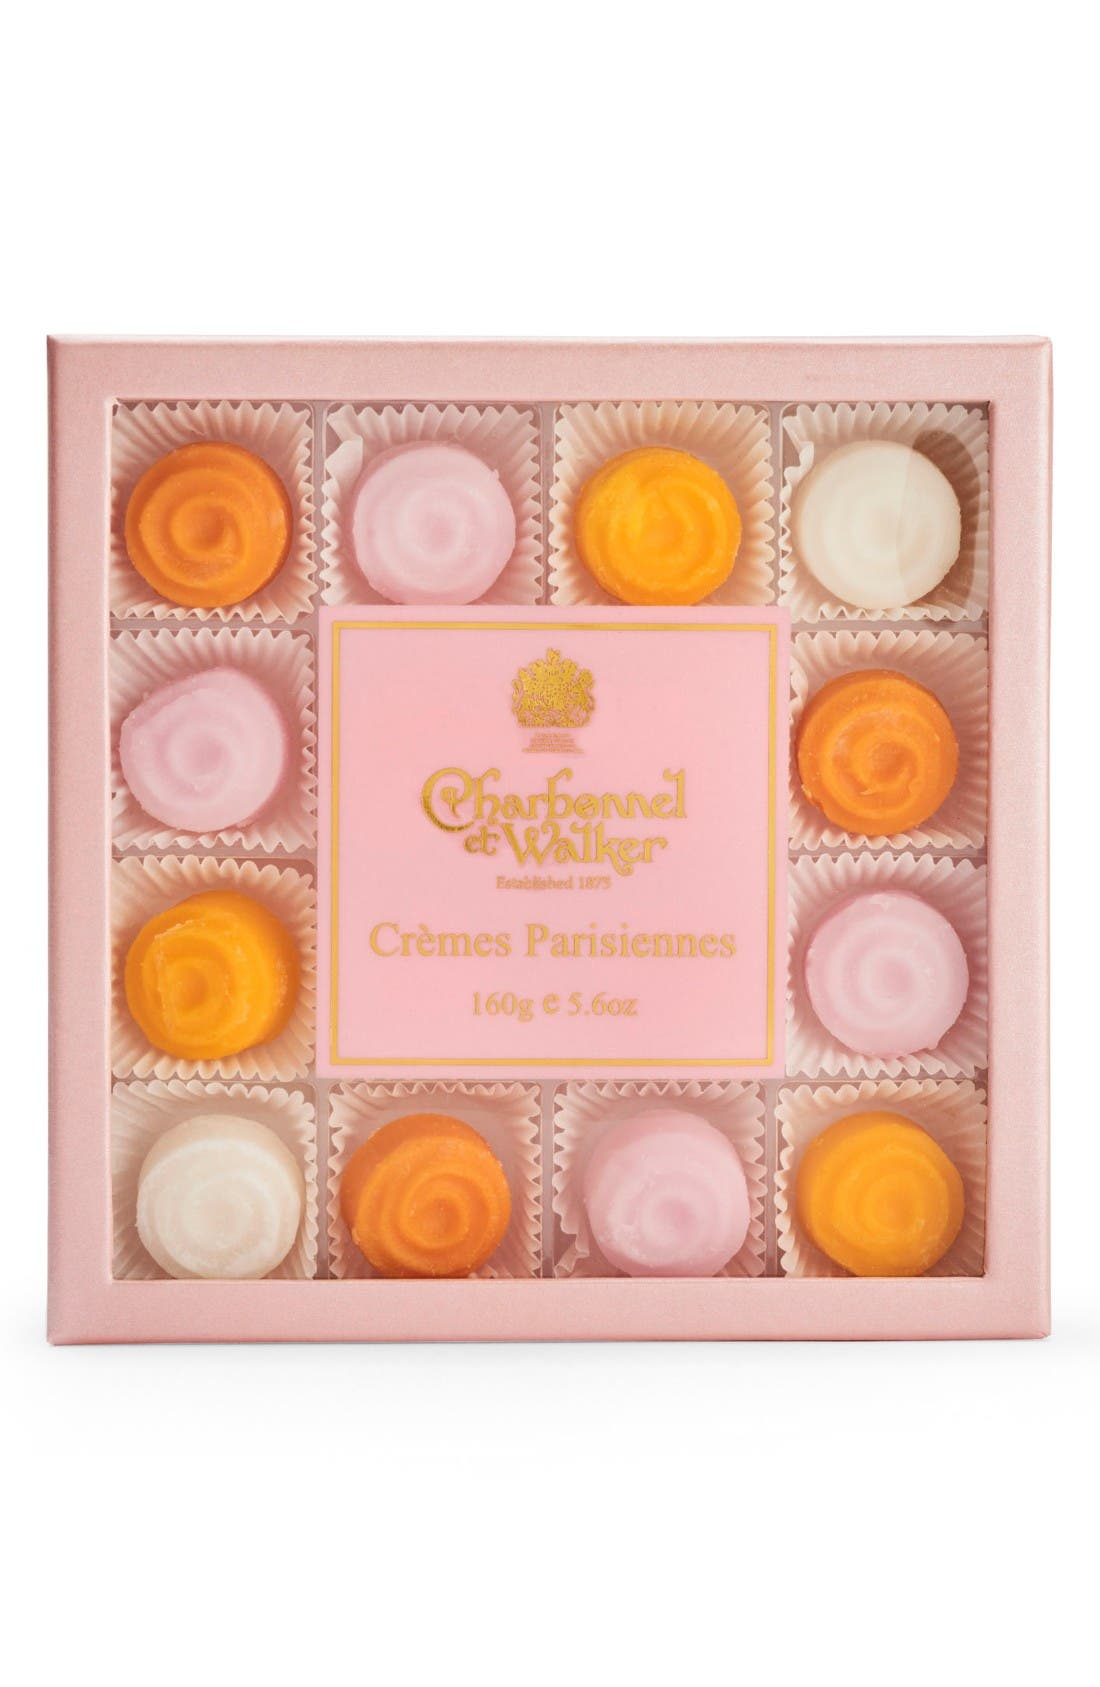 Cremes Parisiennes in Gift Box,                             Main thumbnail 1, color,                             Pink